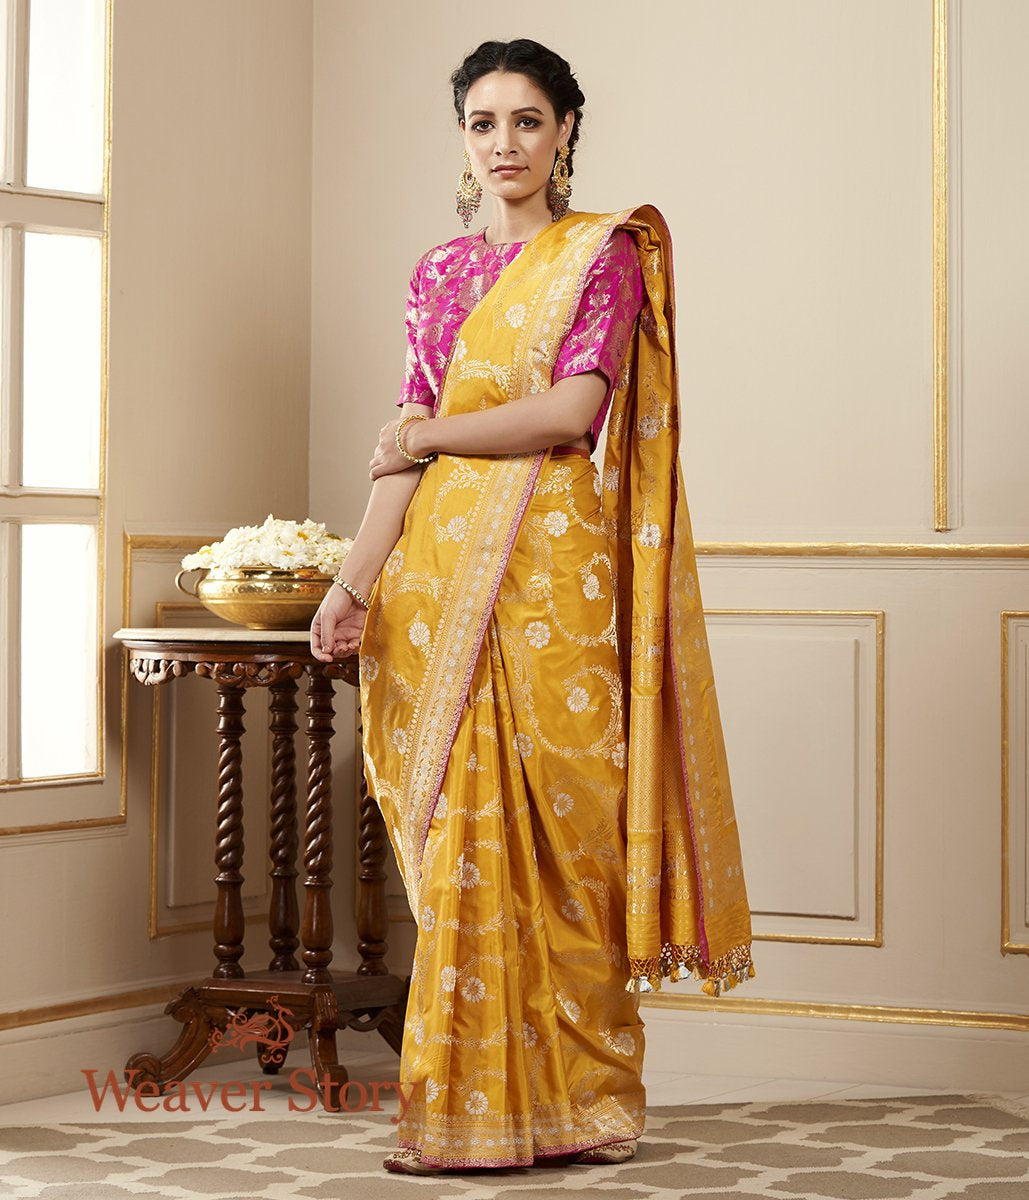 Handwoven Mango Yellow Sona Rupa Kadhwa Jangla Saree with Delicate Border